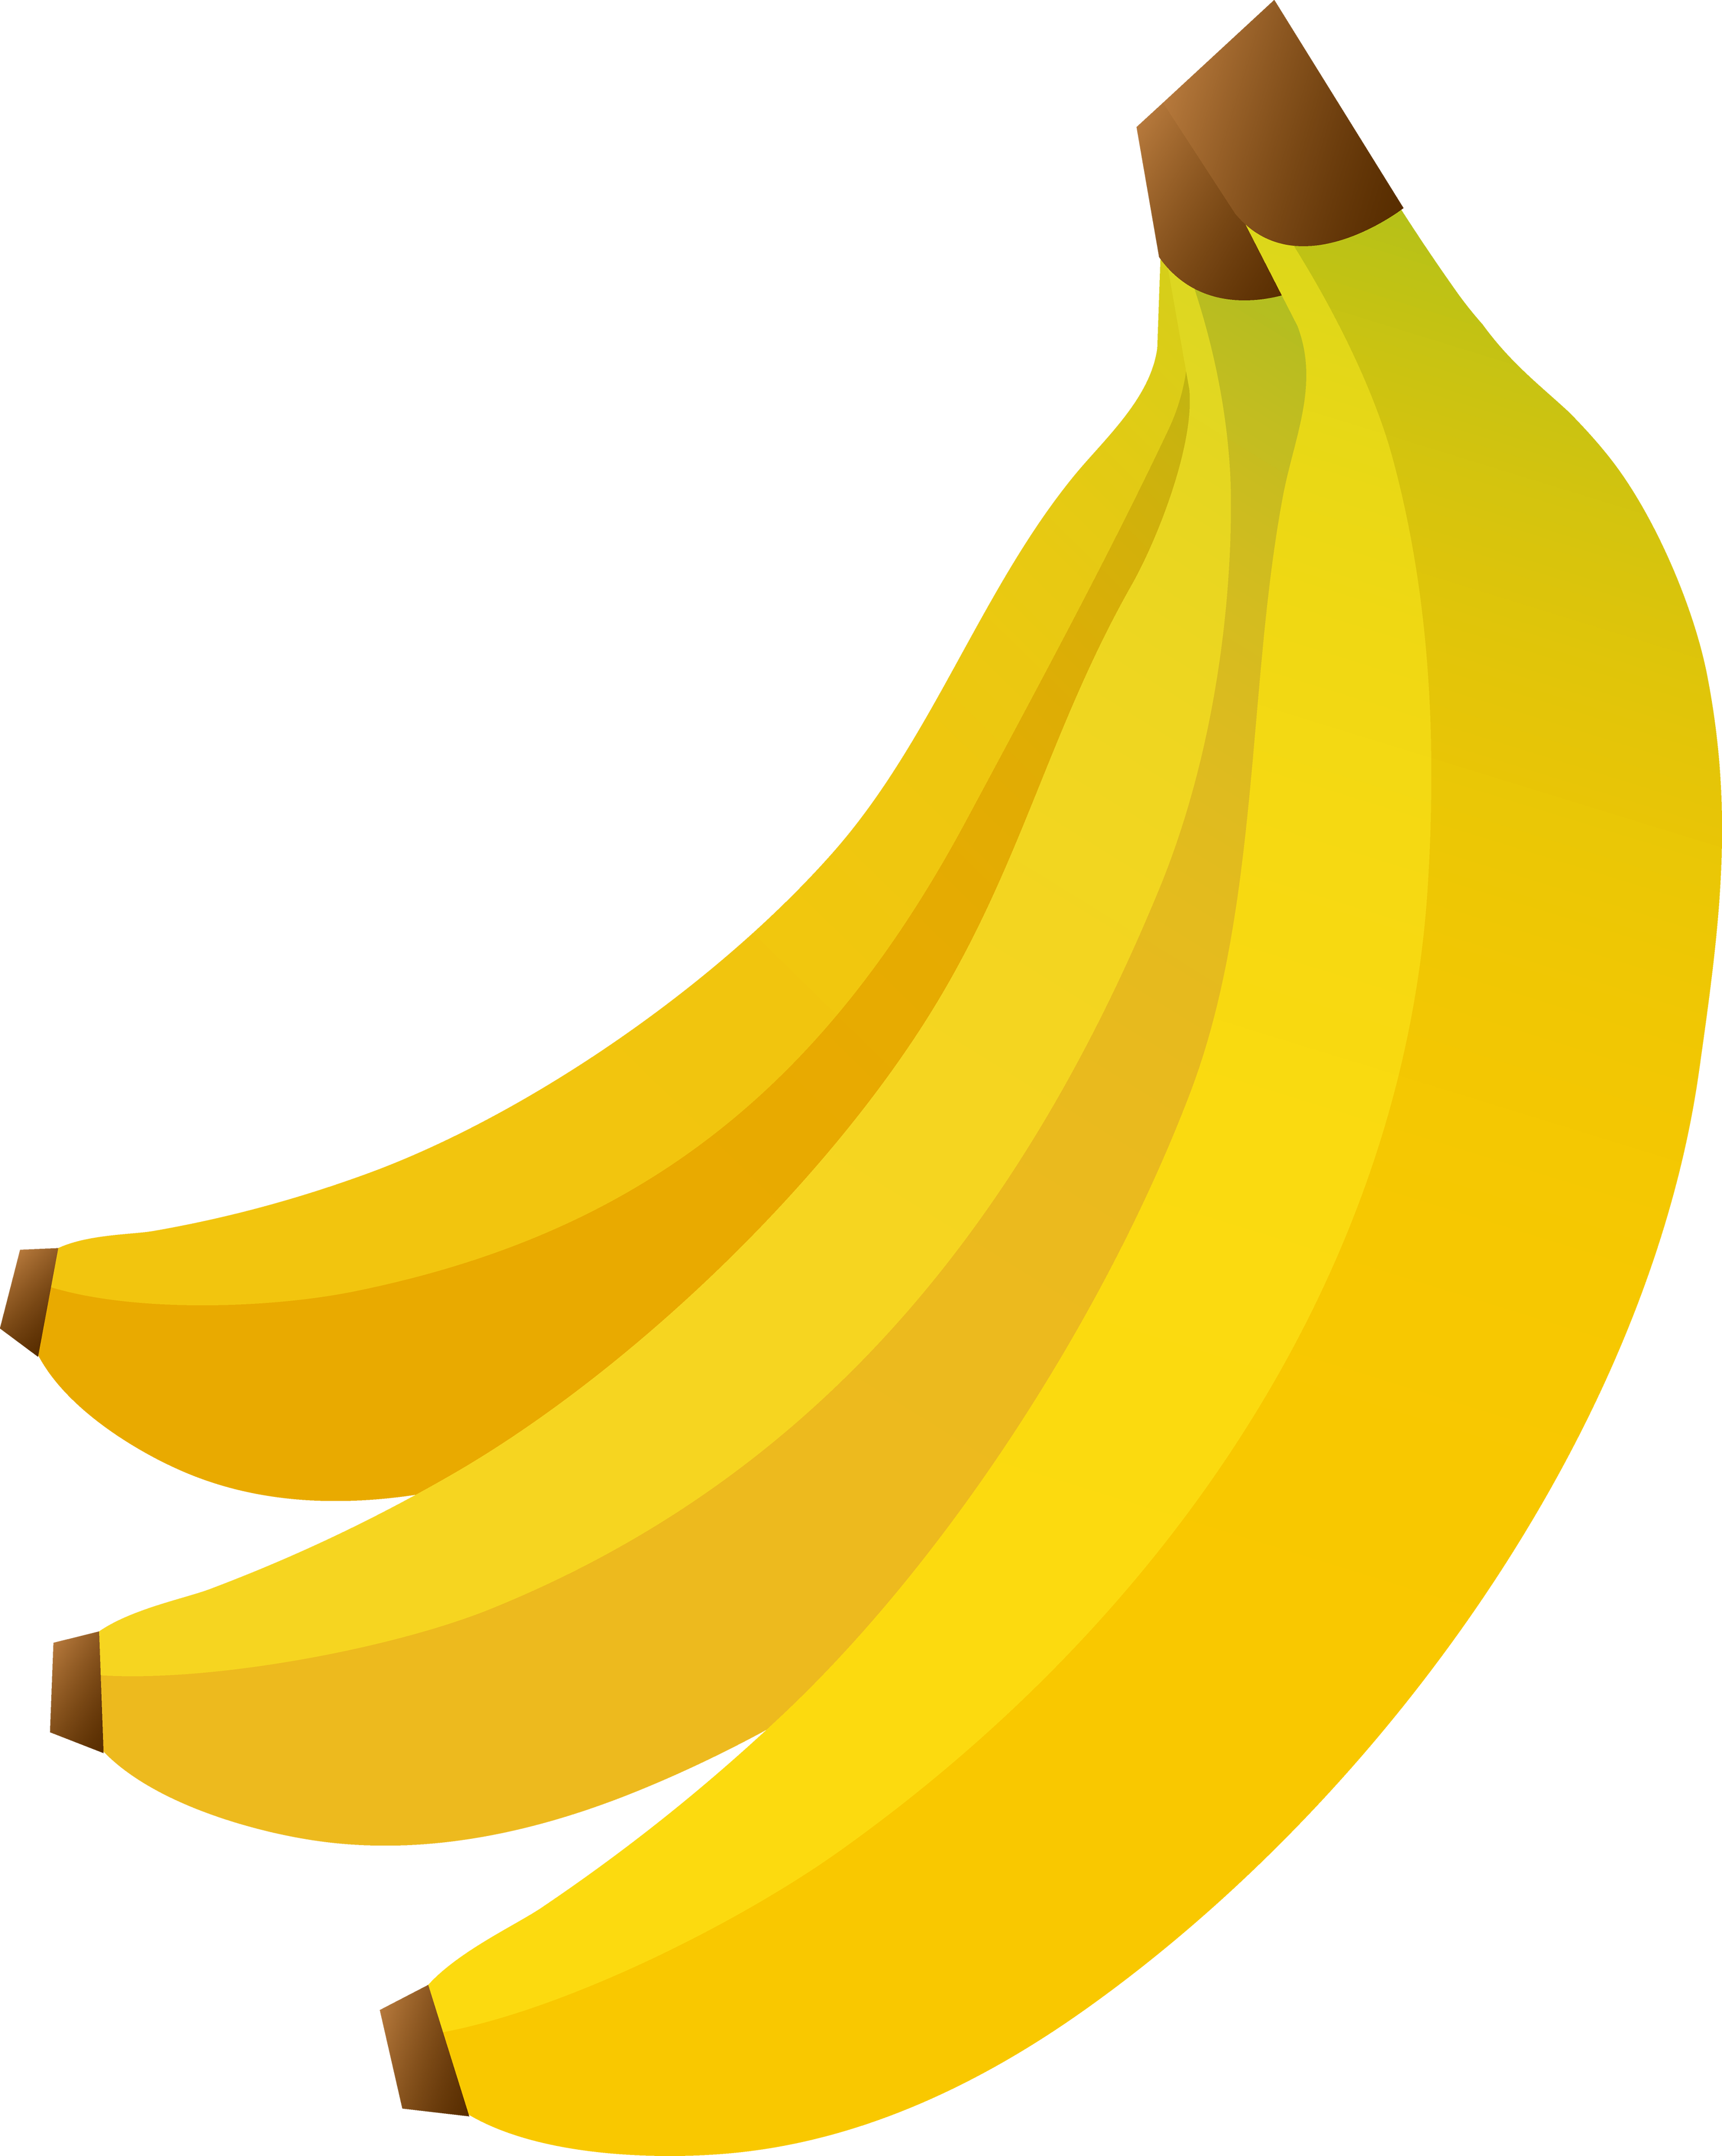 Png image purepng free. Banana clipart transparent background